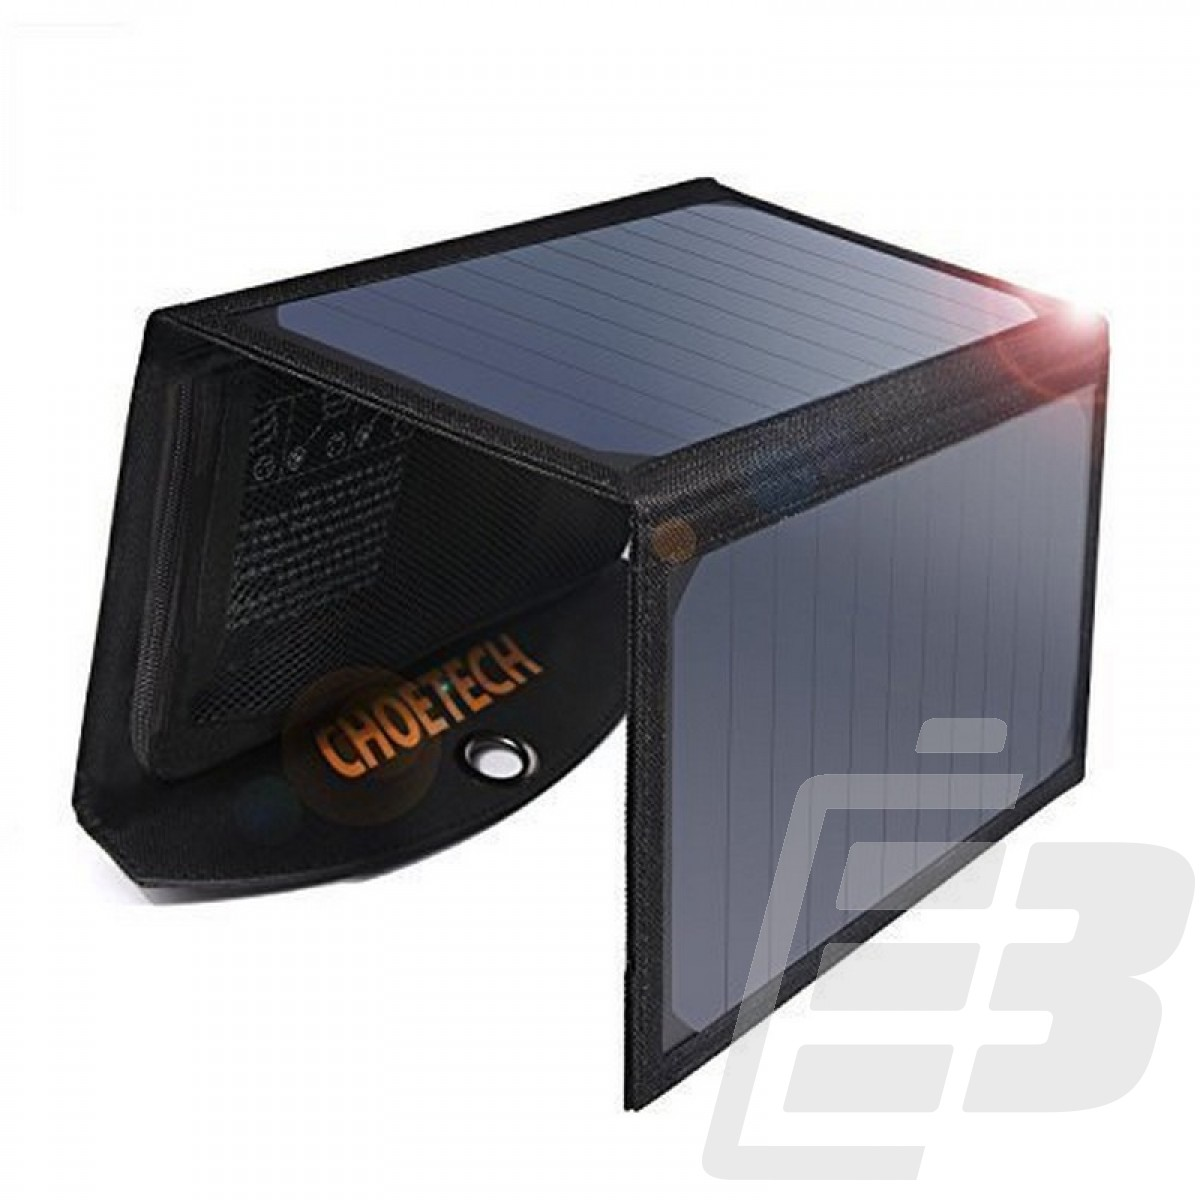 Choetech SC001 Foldable Solar Charger 19W 1